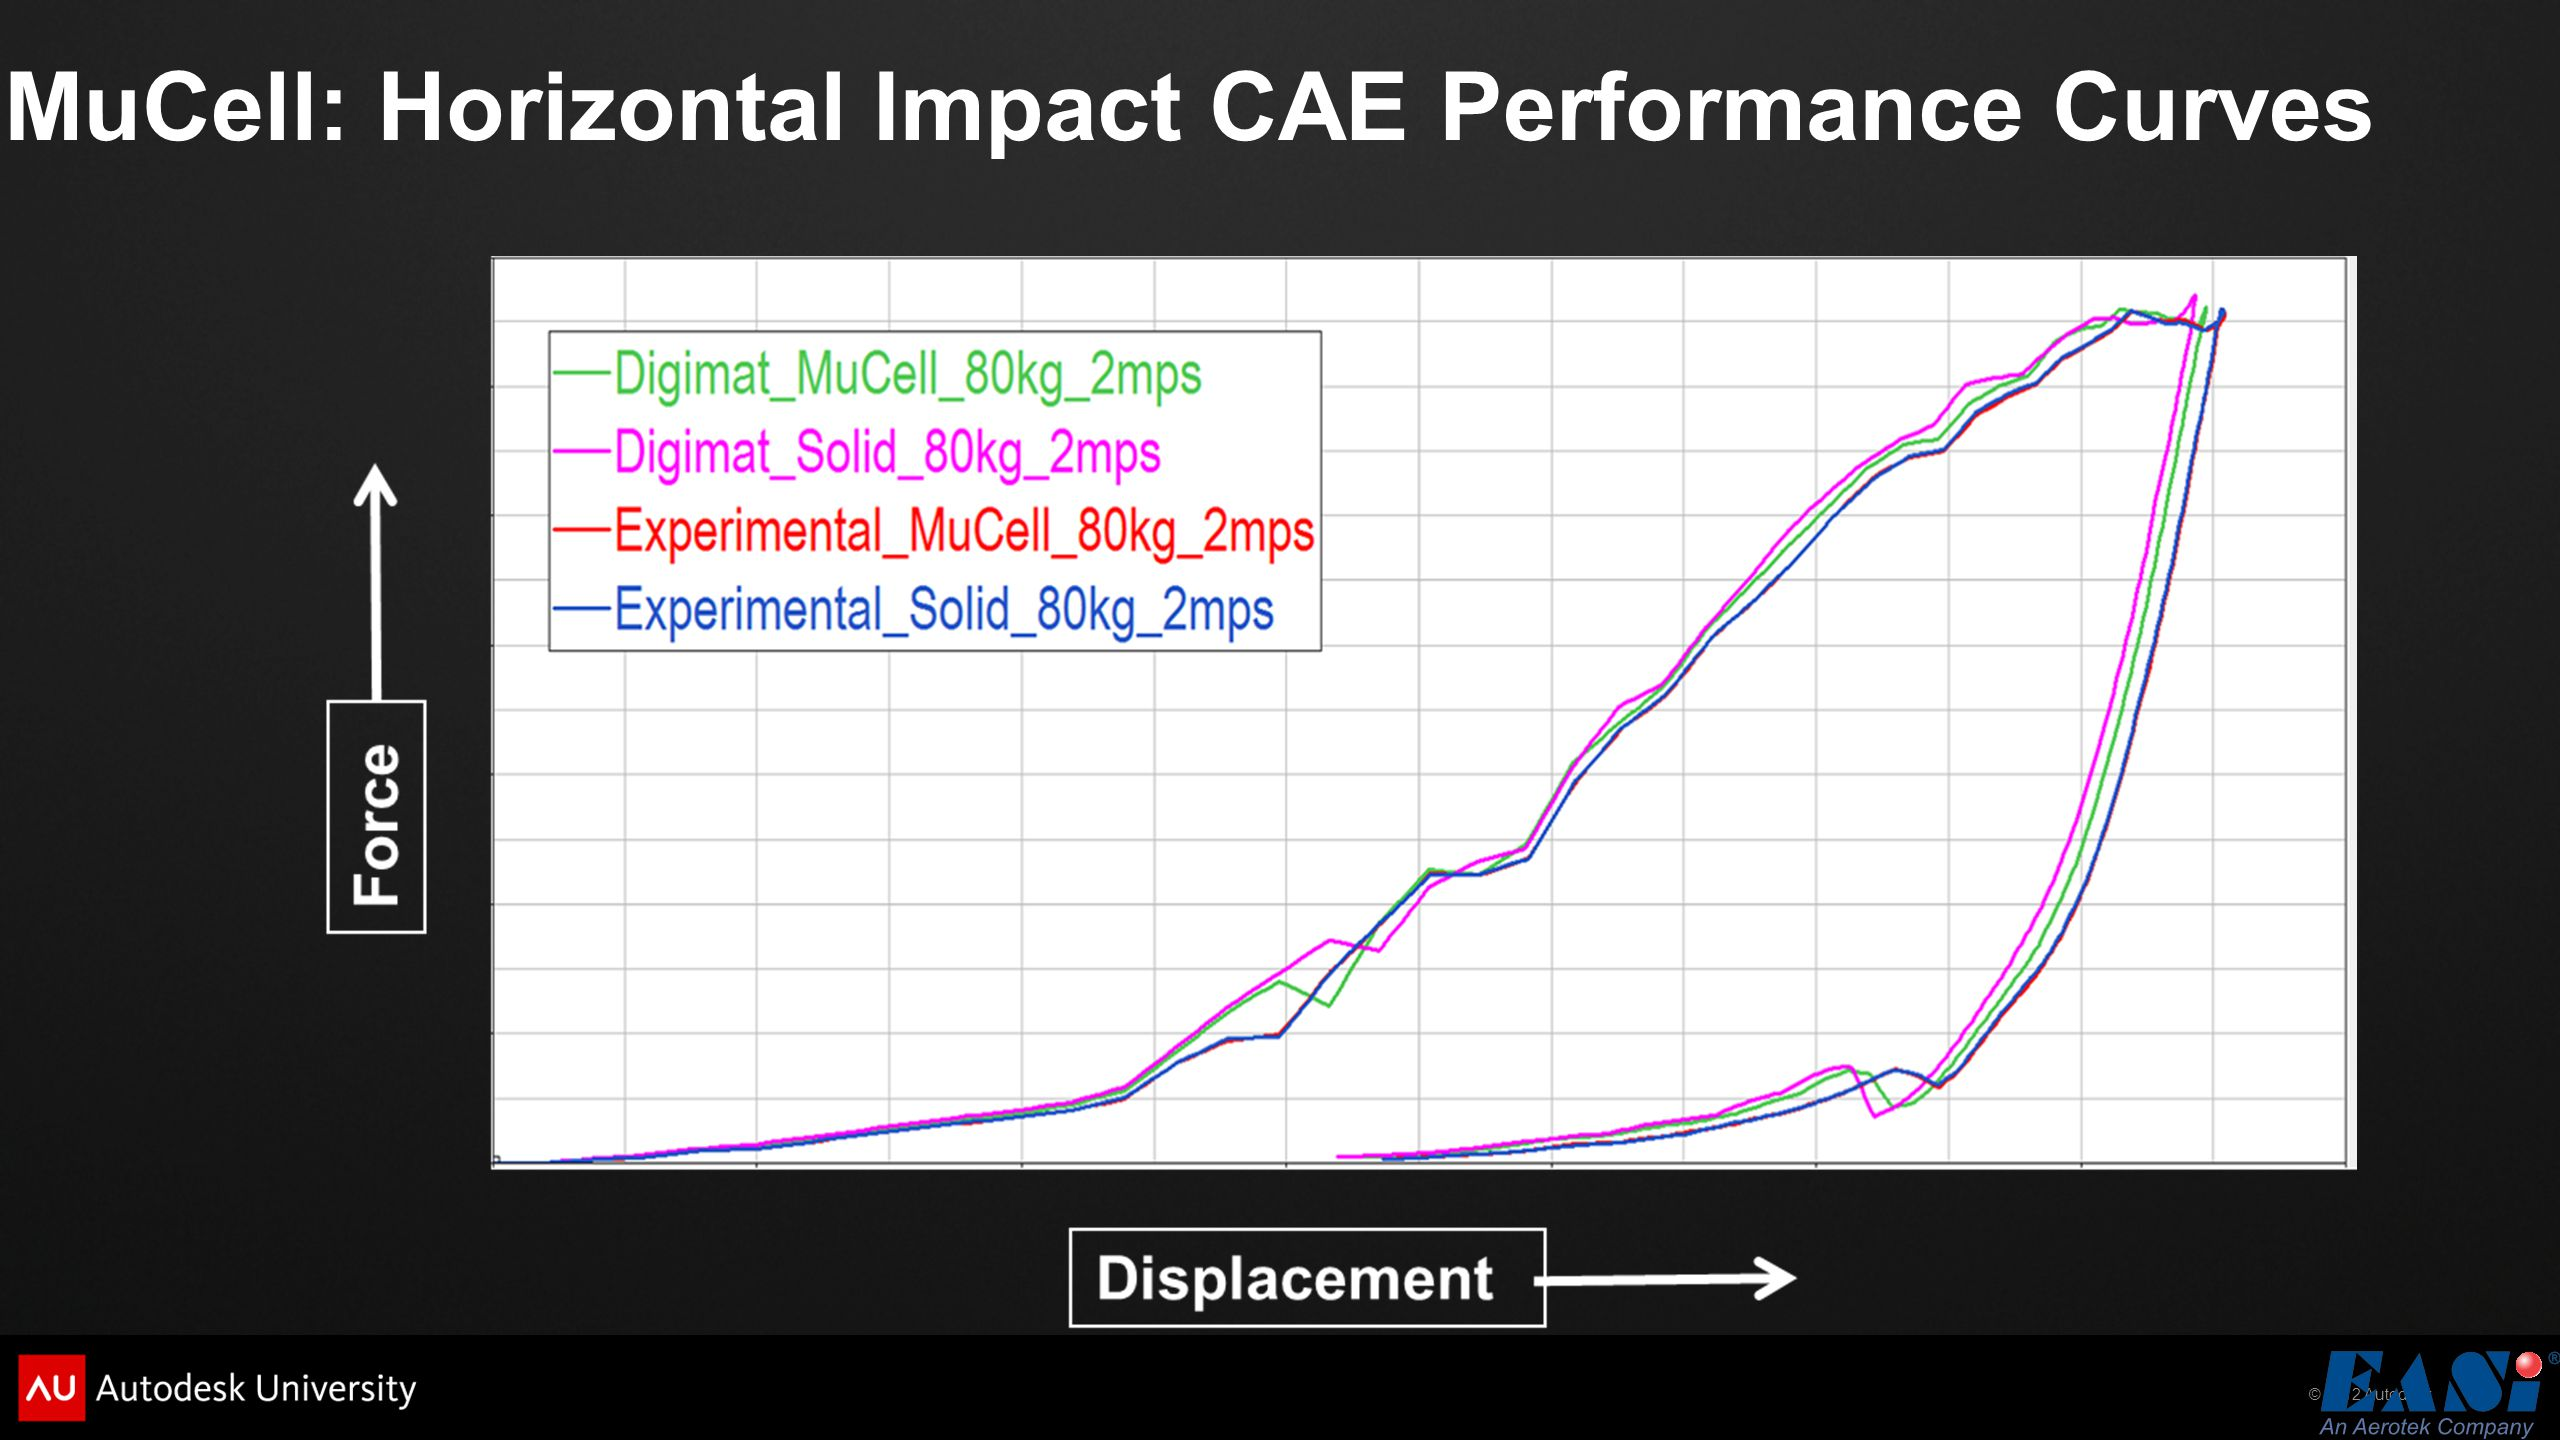 MuCell: Horizontal Impact CAE Performance Curves